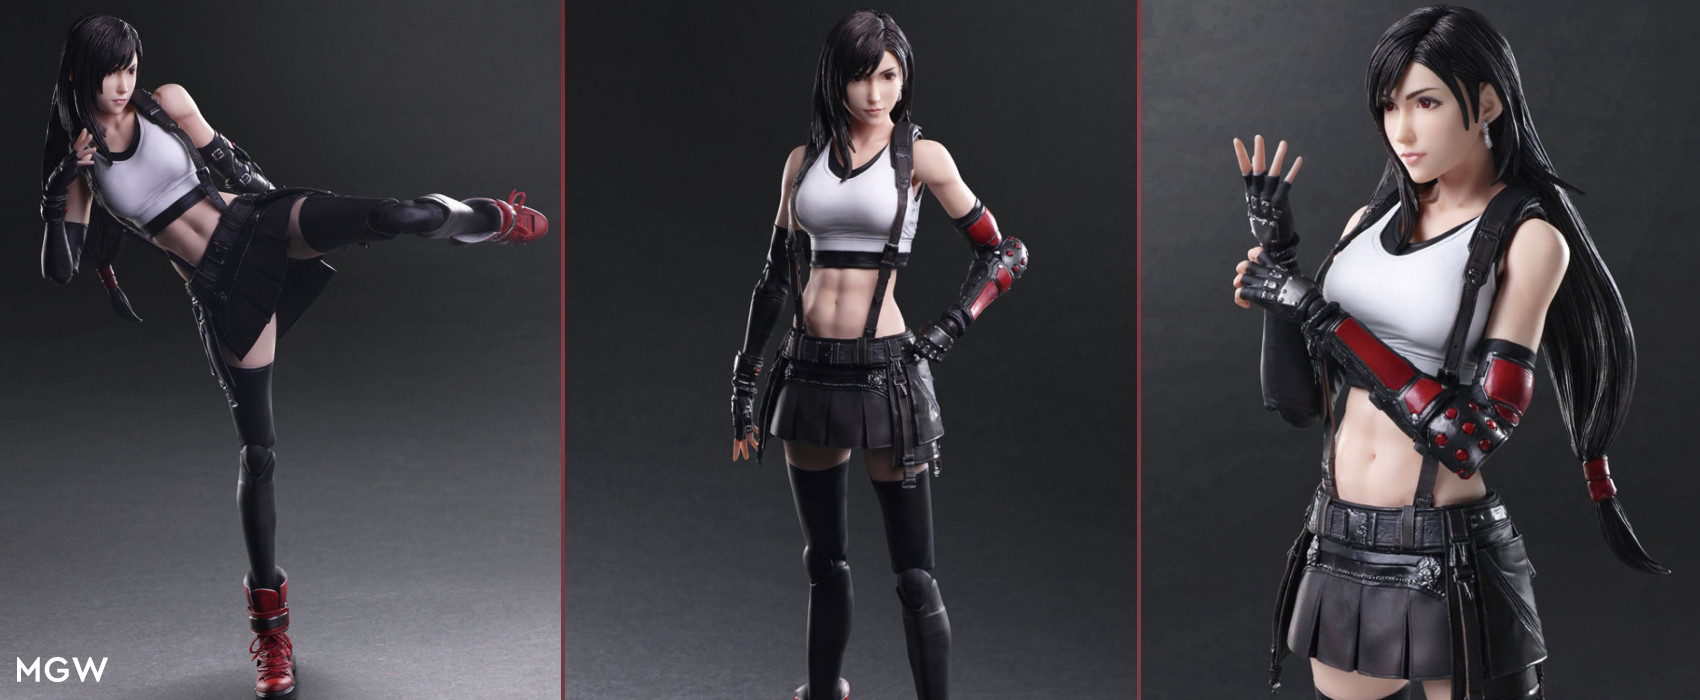 Final Fantasy VII Remake PLAY ARTS KAI Tifa Lockhart by SQUARE ENIX